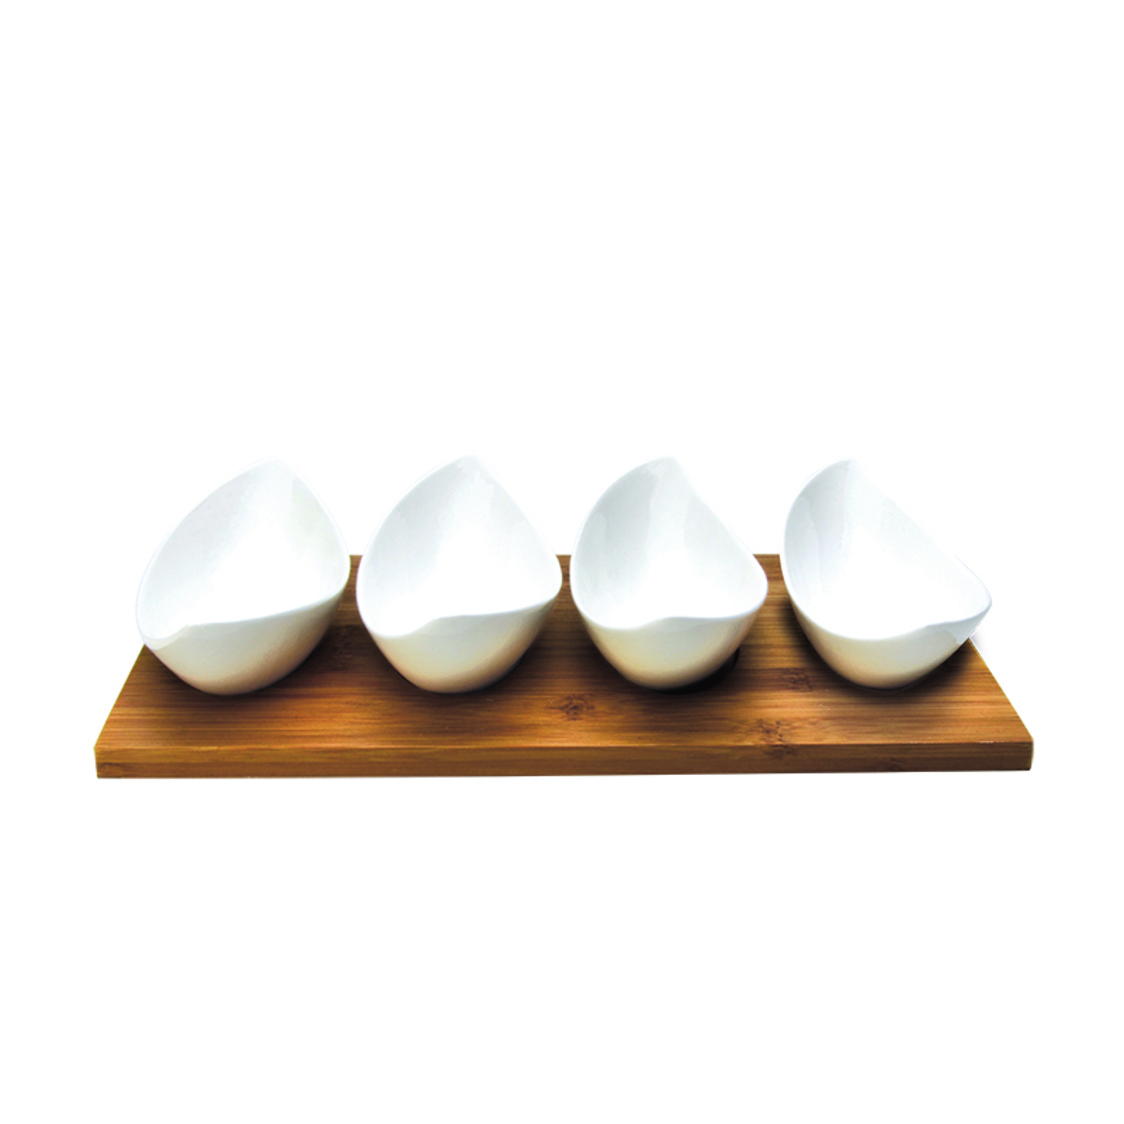 Banana Boat 4 Condiment Bowls On Bamboo Base SR-50